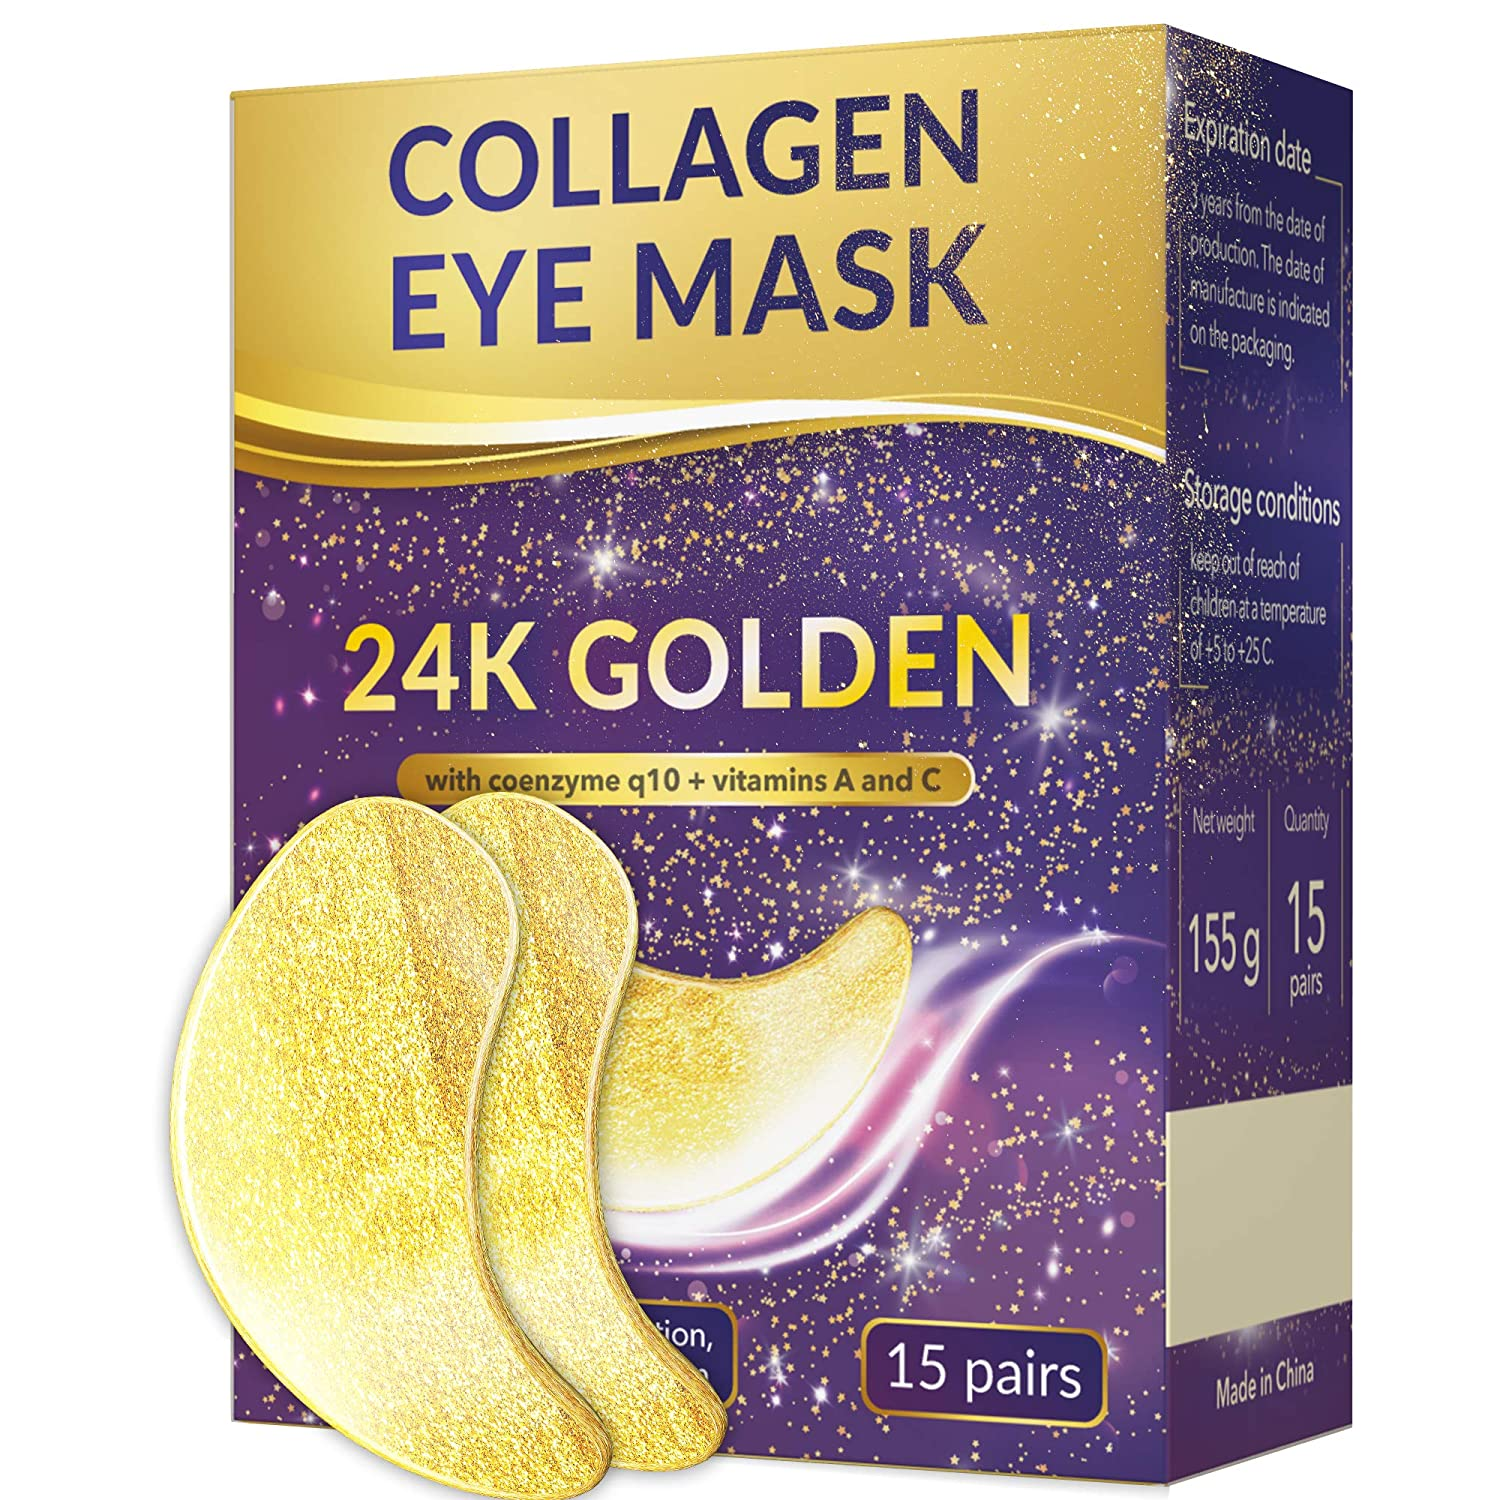 24k gold eye mask - Under Eye Patches - Under Eye Bags Treatment - Collagen Eye Mask - Hyaluronic acid eye mask - Reducing Dark Circles - Eye gel patches - Vitamin C eye mask - Hydrogel patches